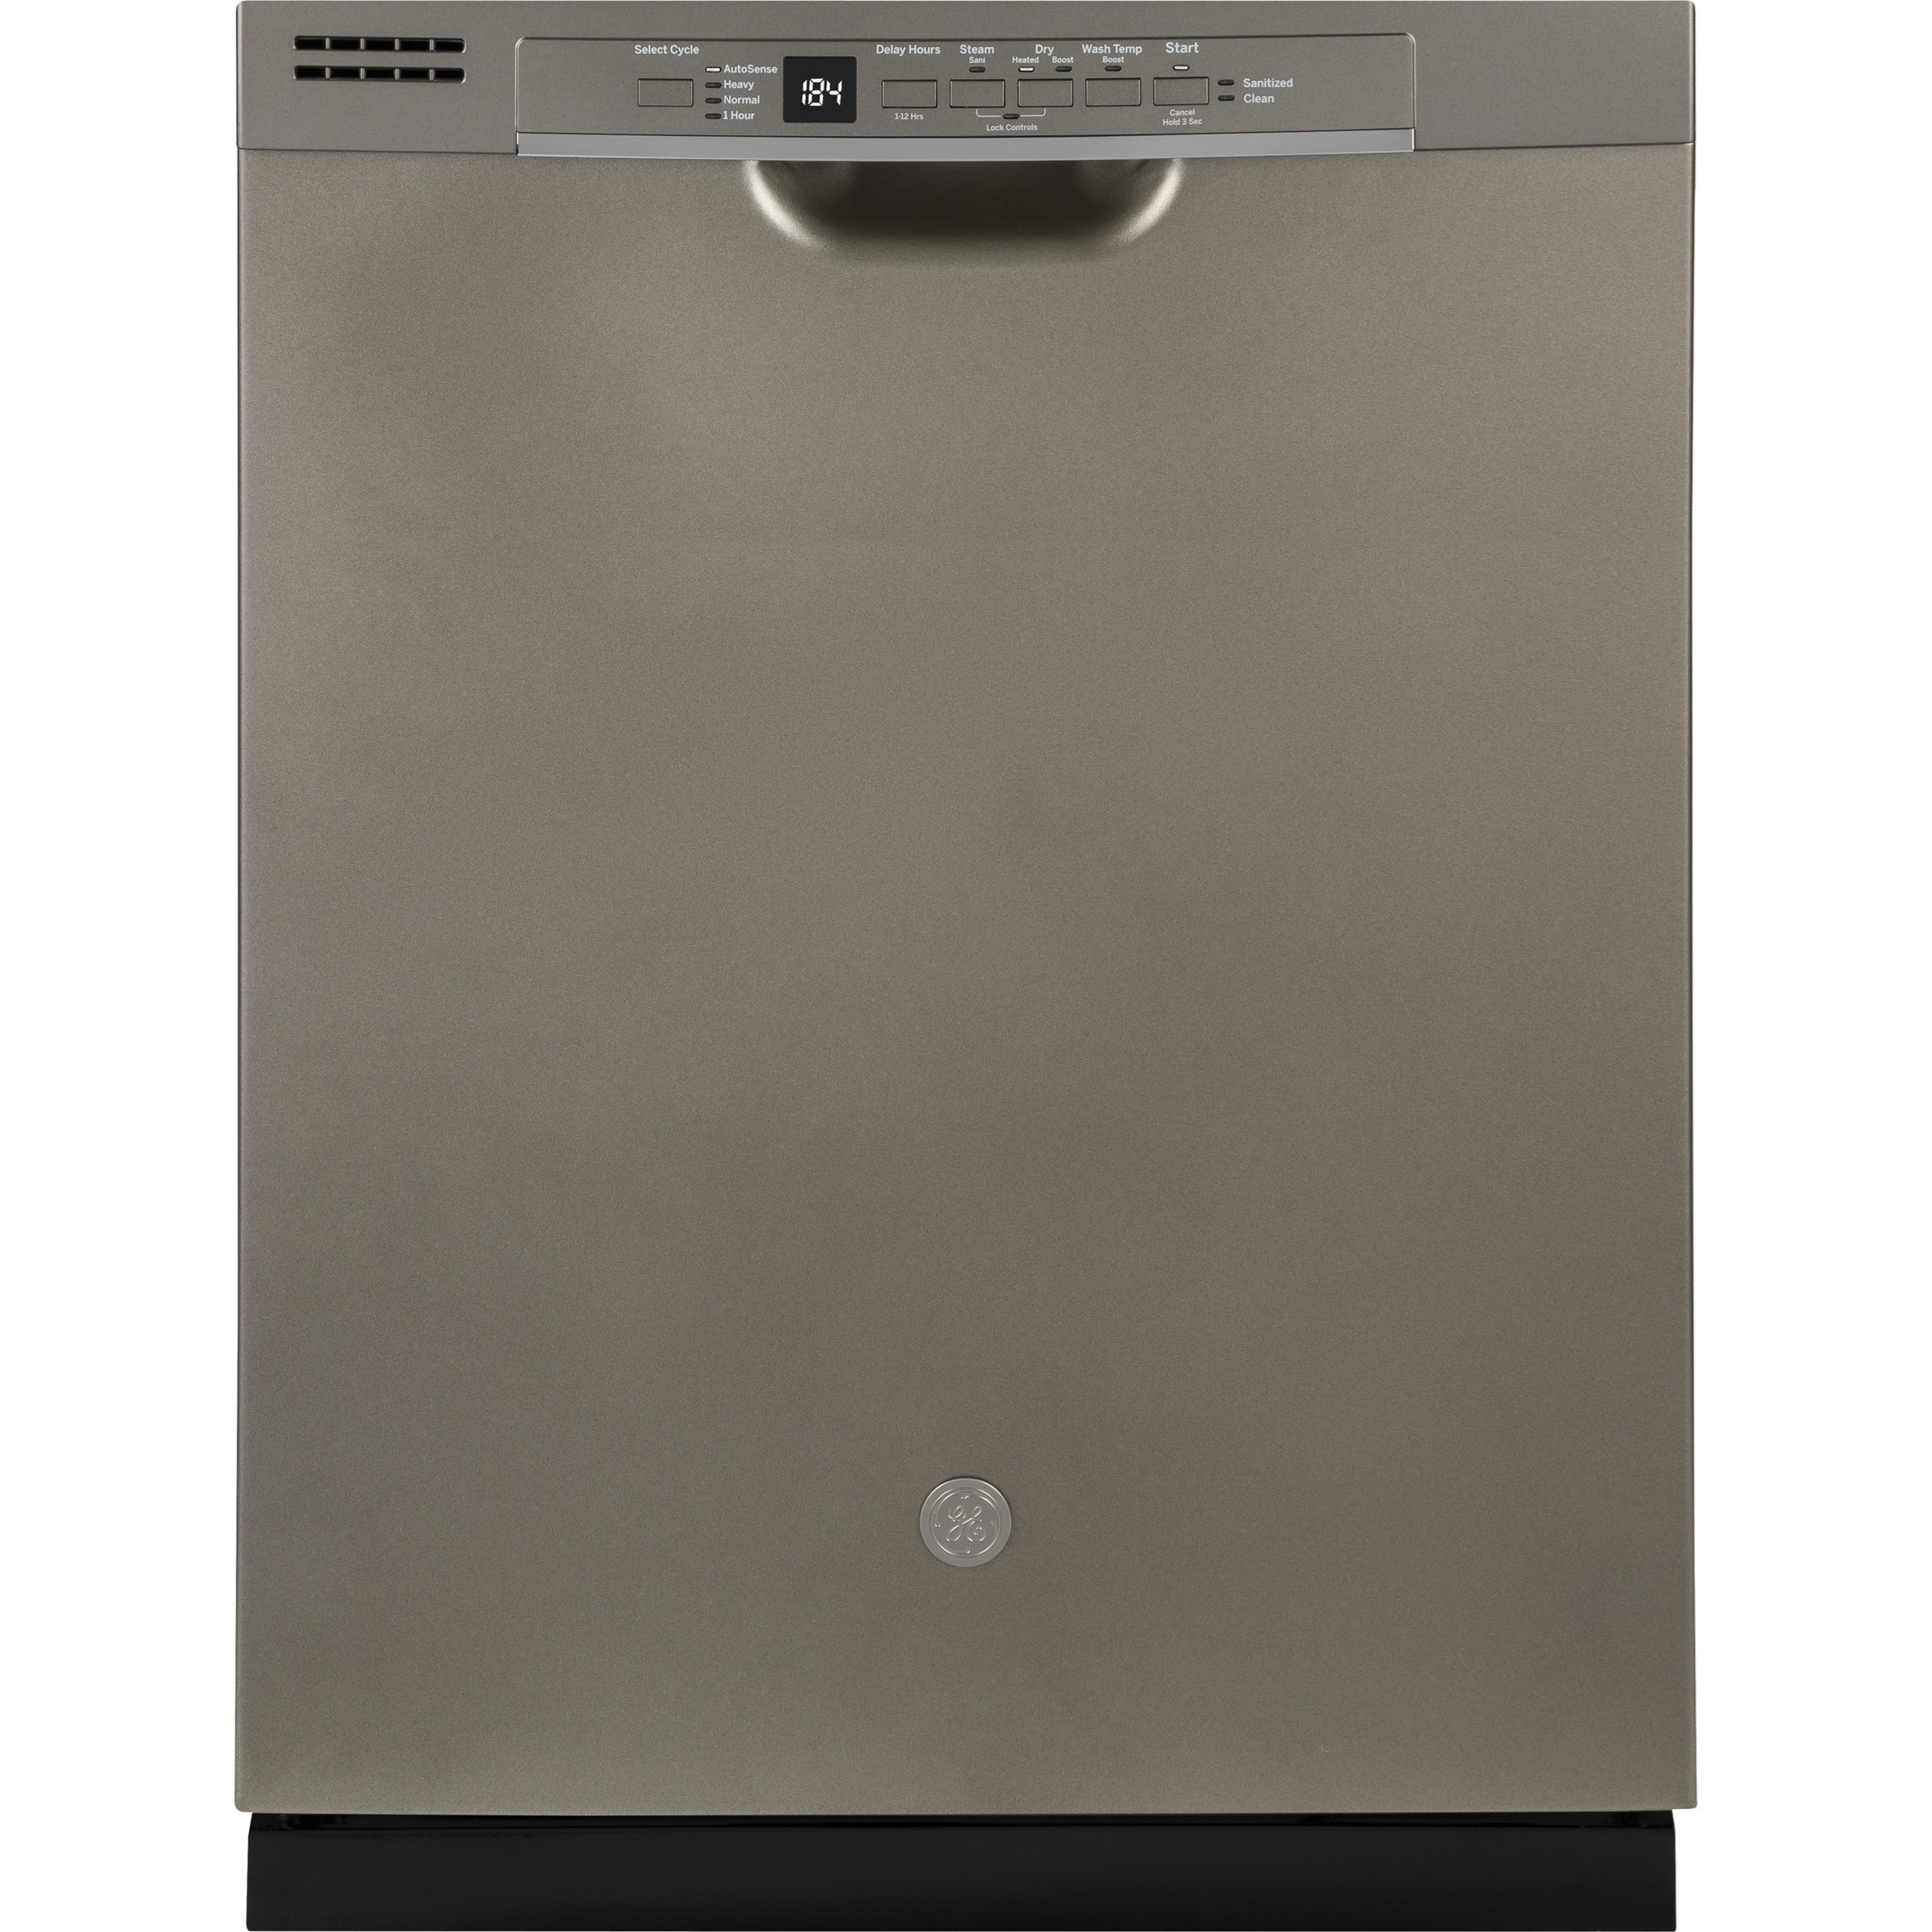 Dishwashers GE® Dishwasher with Front Controls by GE Appliances at Westrich Furniture & Appliances